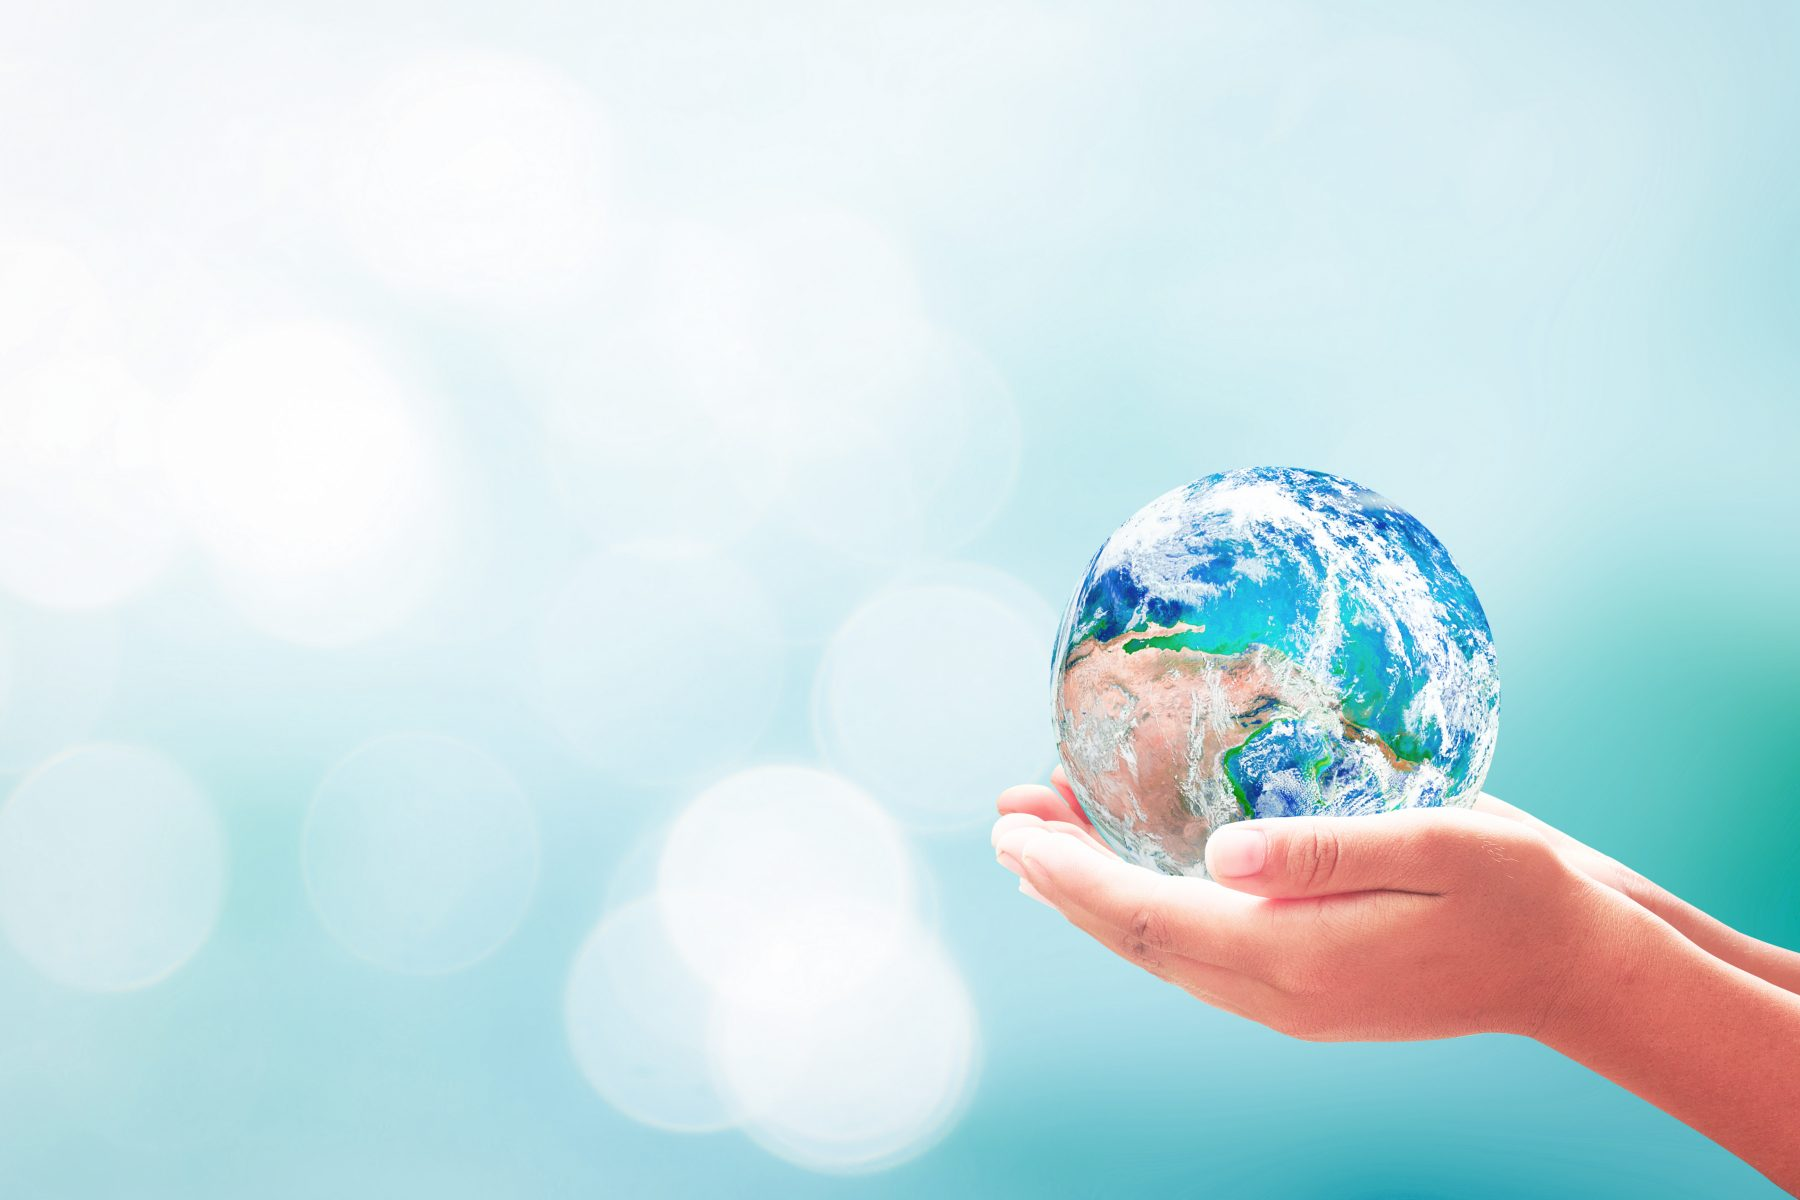 cherish the world and others. Create a peaceful world